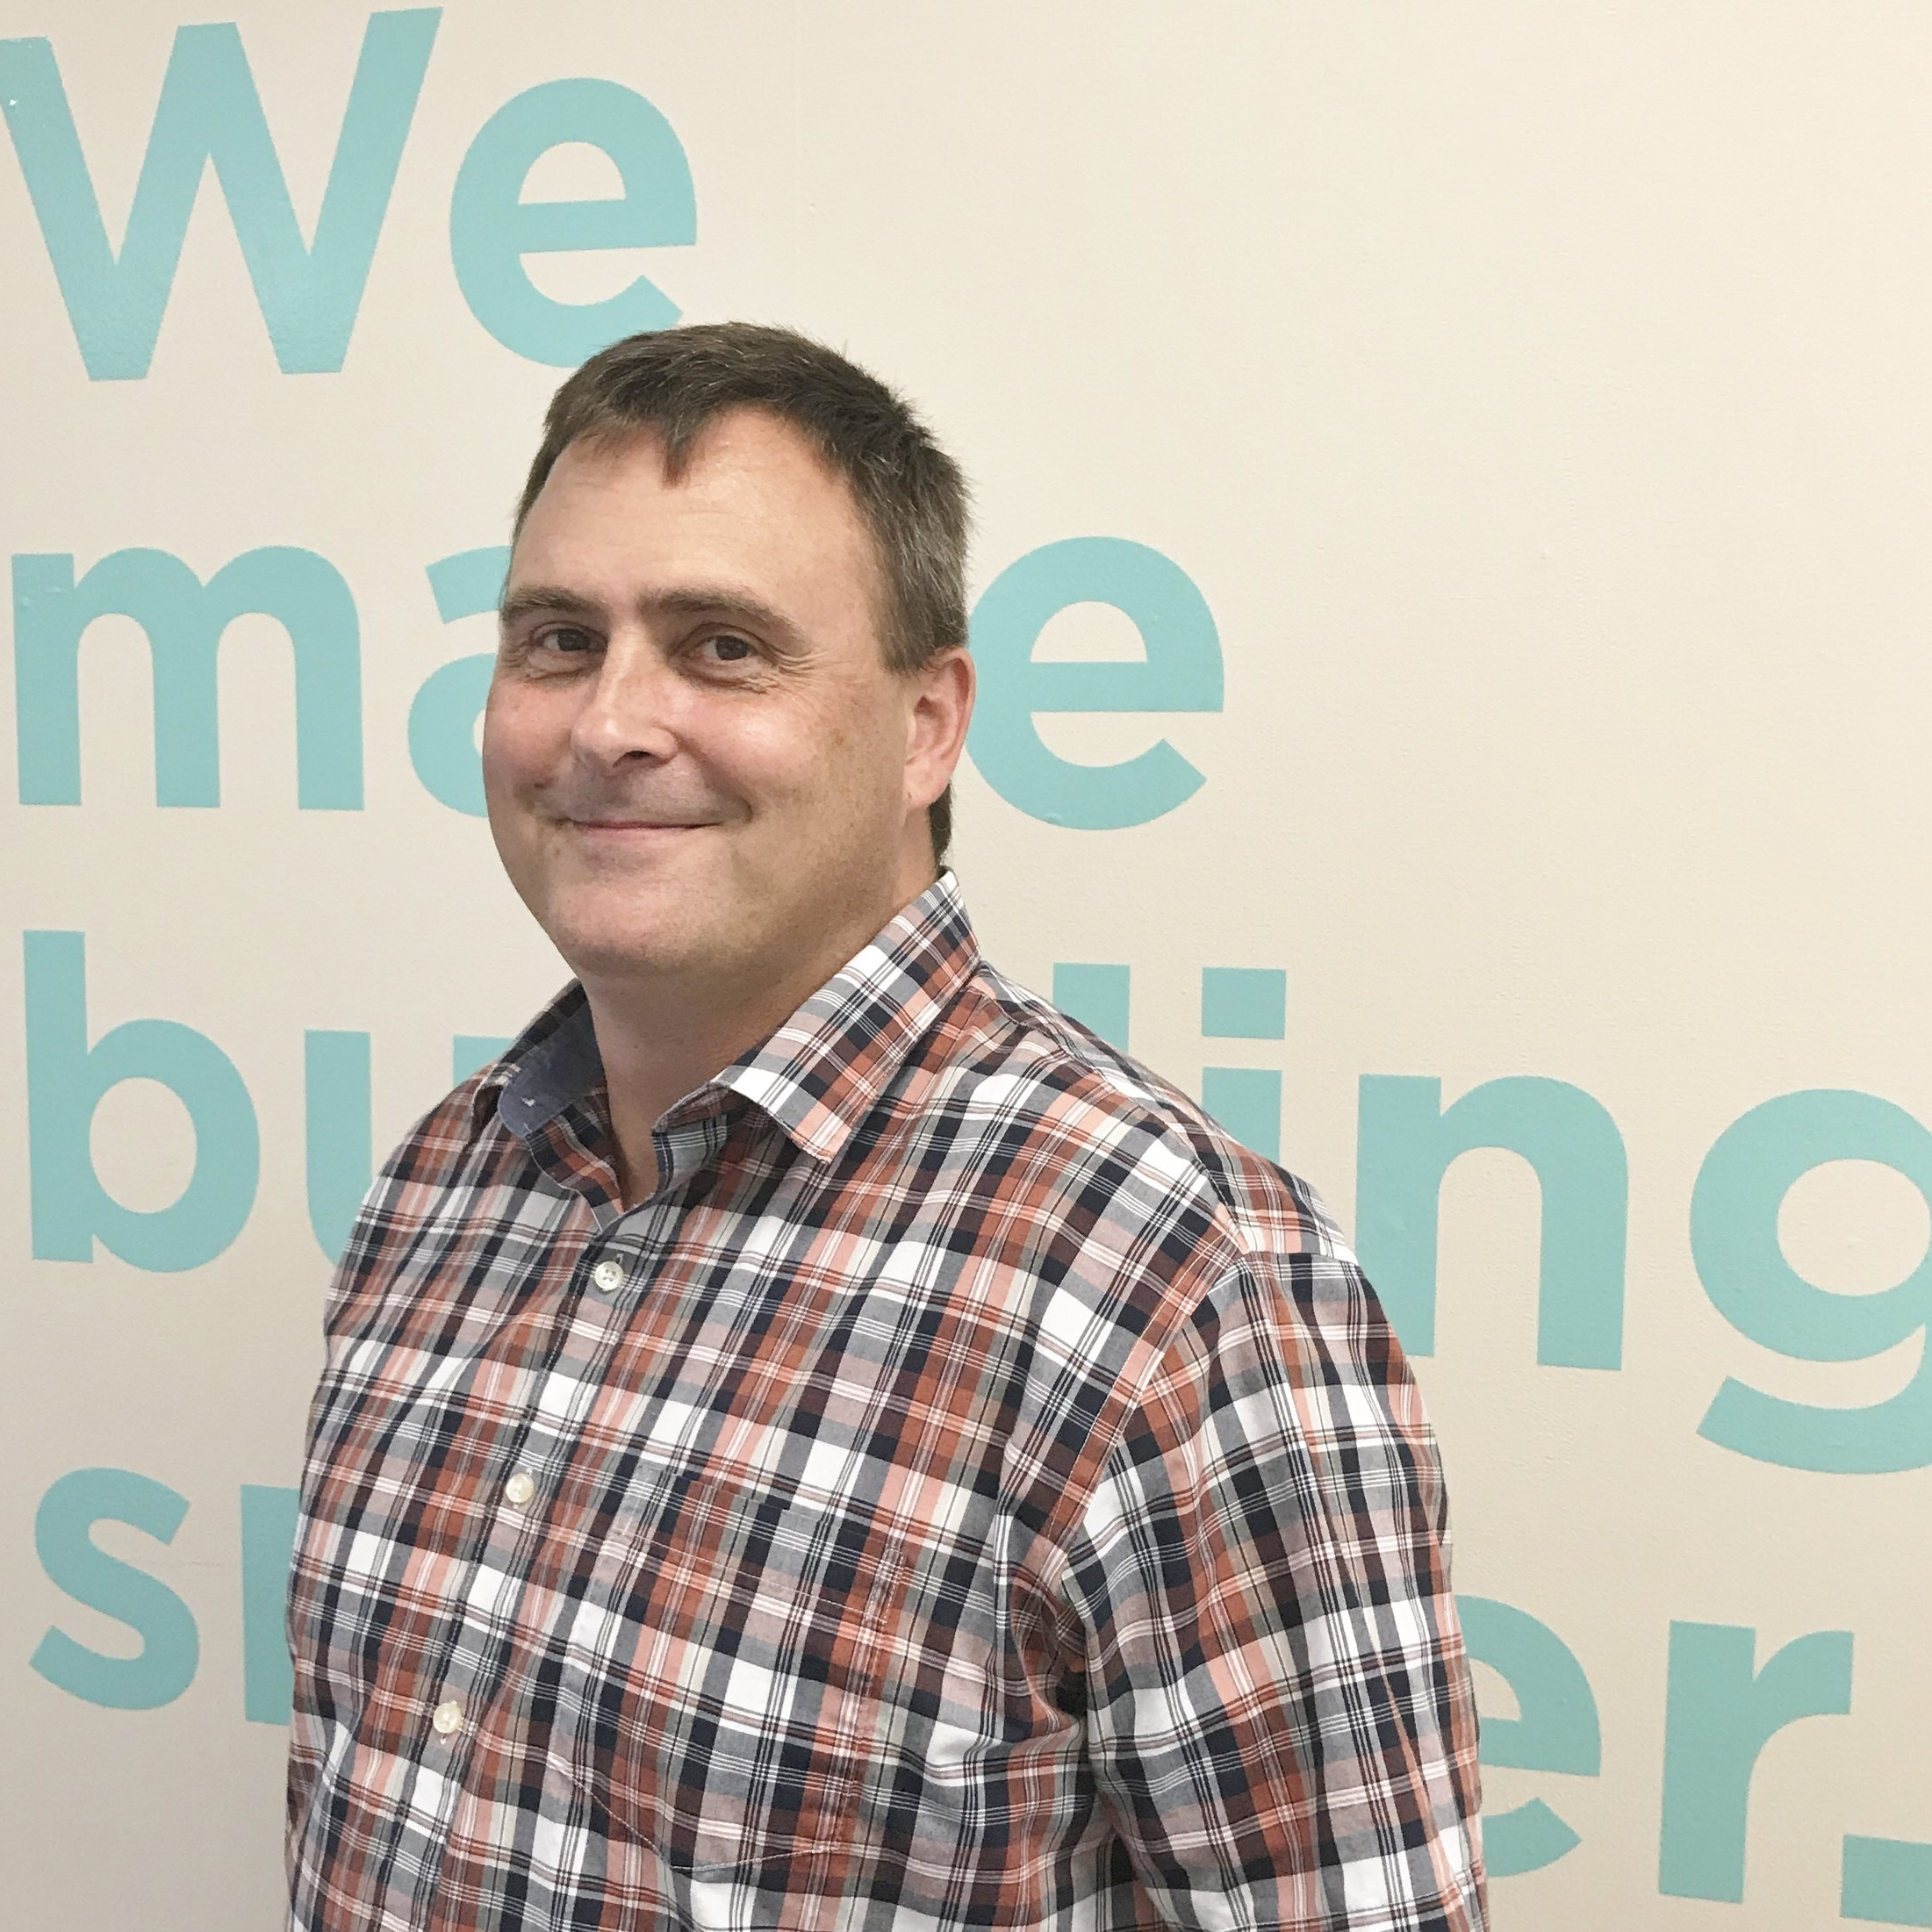 Celebrating his one-year anniversary at Integrated Building Systems and helping to make buildings smarter with technology: Jason Lawrence